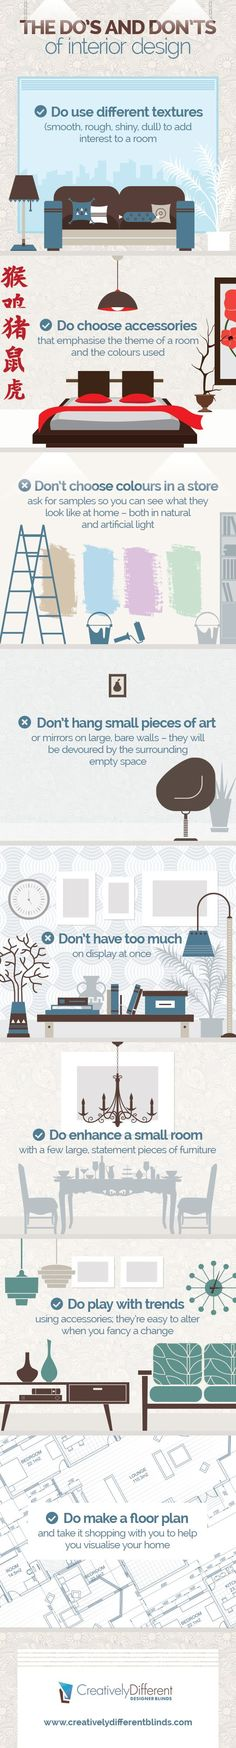 Doing up the house? Do's and don'ts of interior design infographic to avoid feng shui Faux pas.